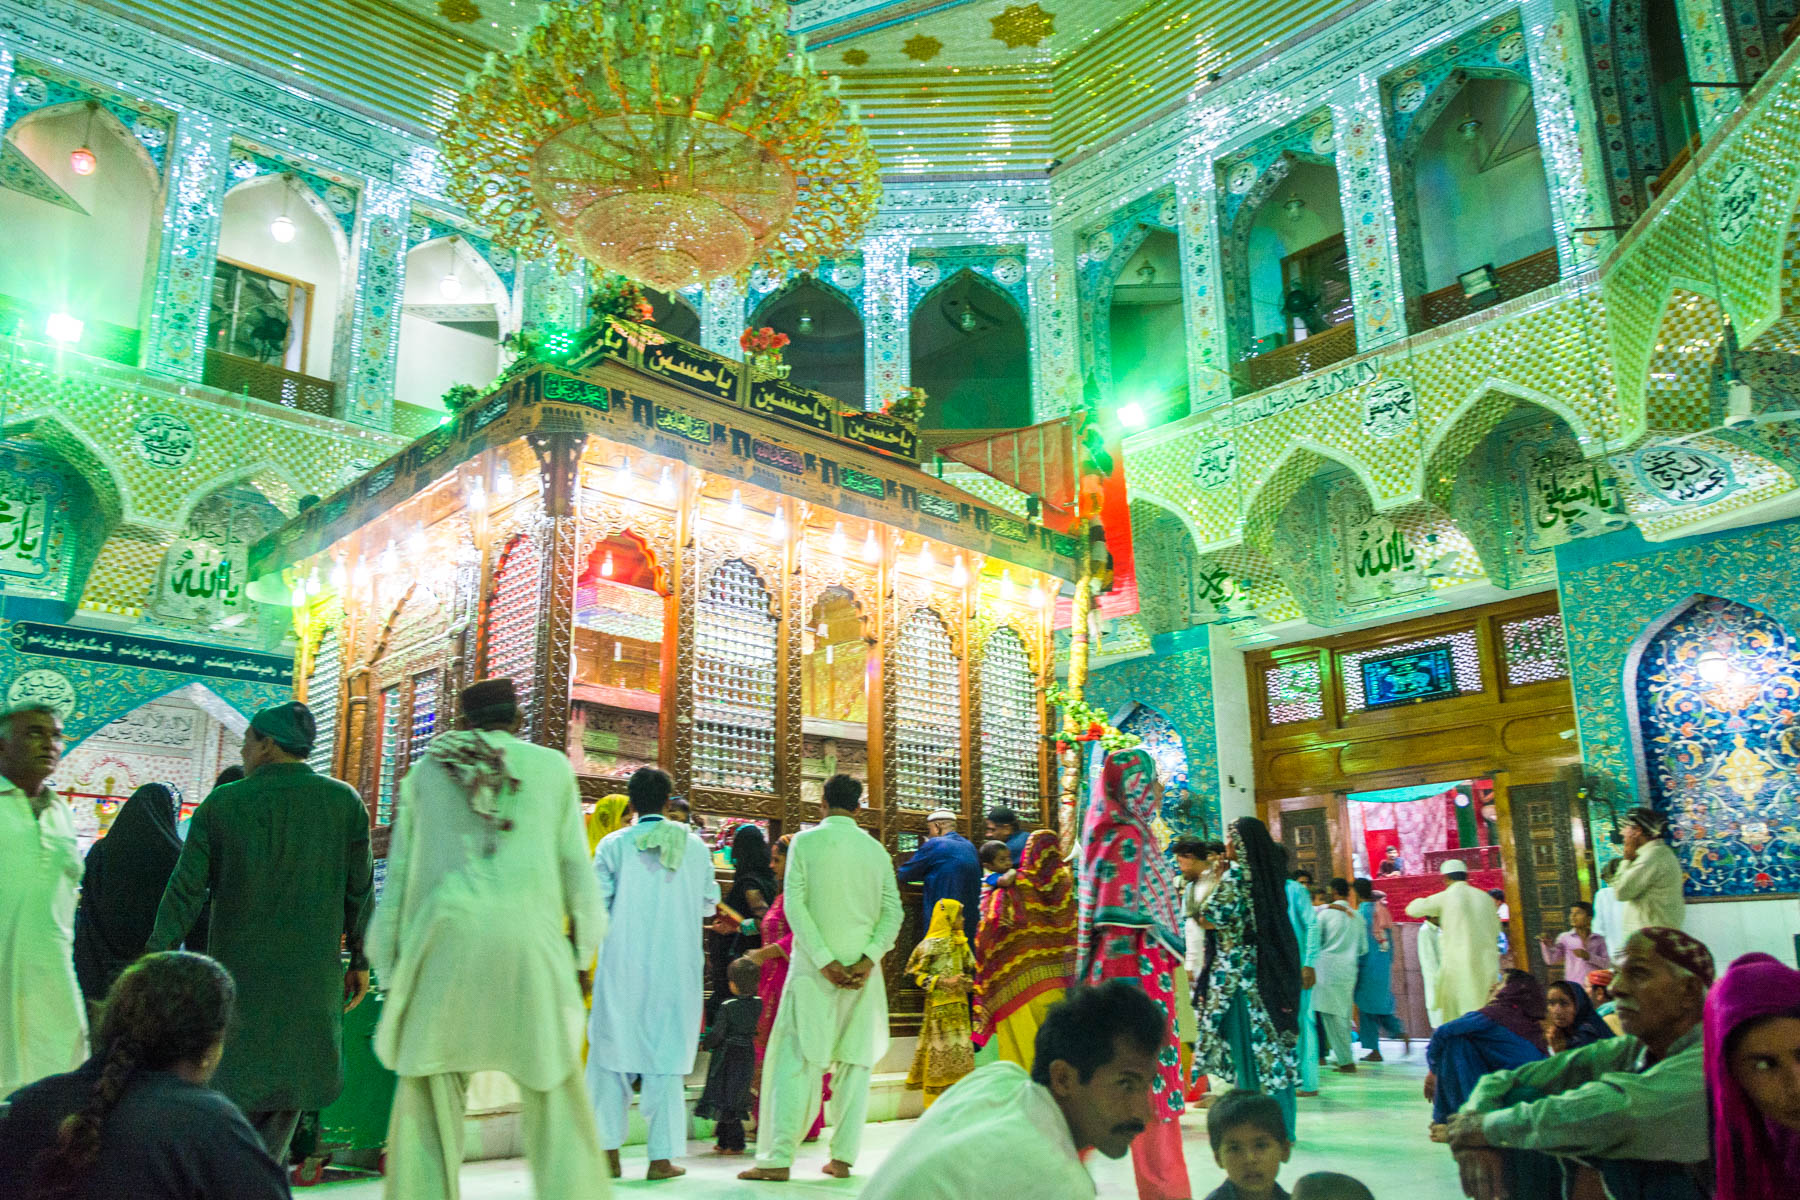 The Lal Shahbaz Qalandar shrine in Sehwan, Pakistan